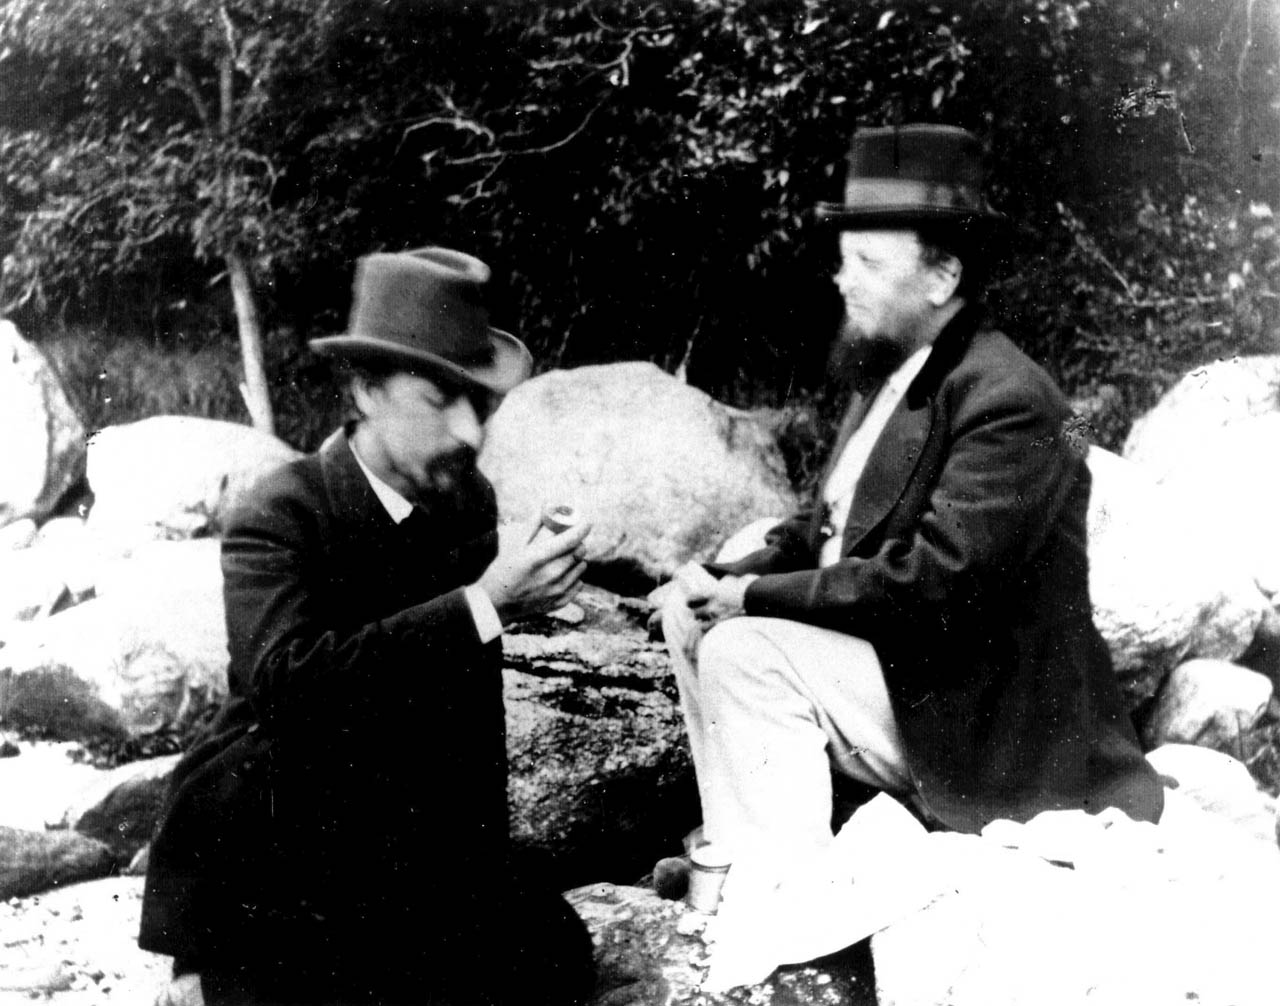 George Brainerd (left) having lunch with a friend in 1875 on the shore in Great Neck, Long Island. You might notice that there's some blurriness on their faces. The exposure time of the camera was likely less than a second, much better than the older wetcollodion process that would take several minutes to capture one shot, though not quite fast enough yet to capture motion. (Photo Credit: George Bradford Brainerd)